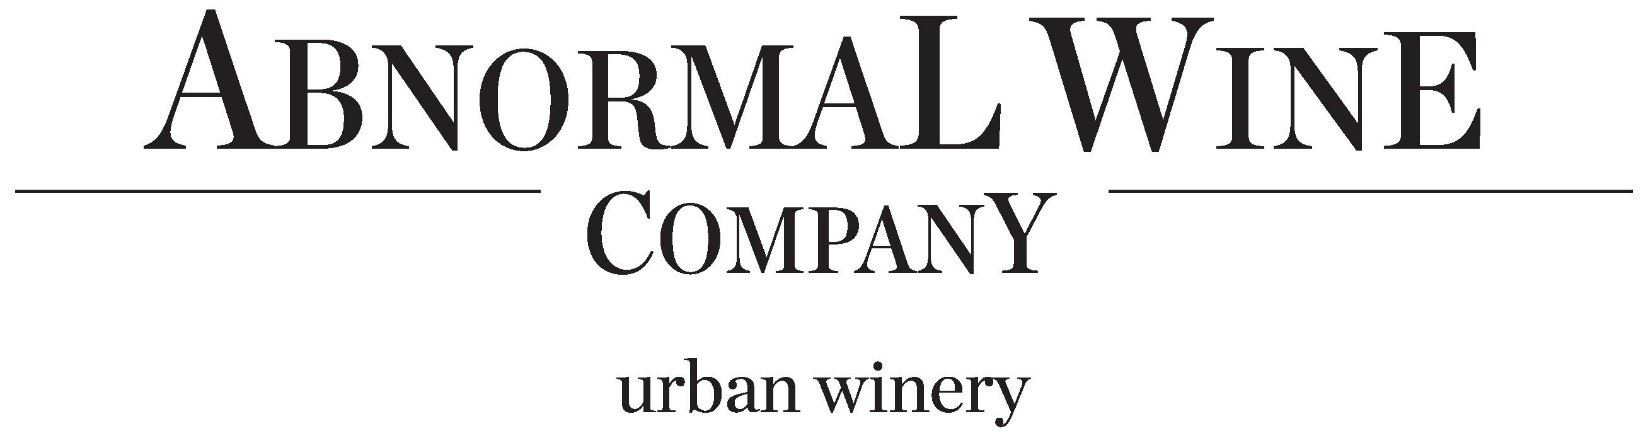 Abnormal Wine Co.